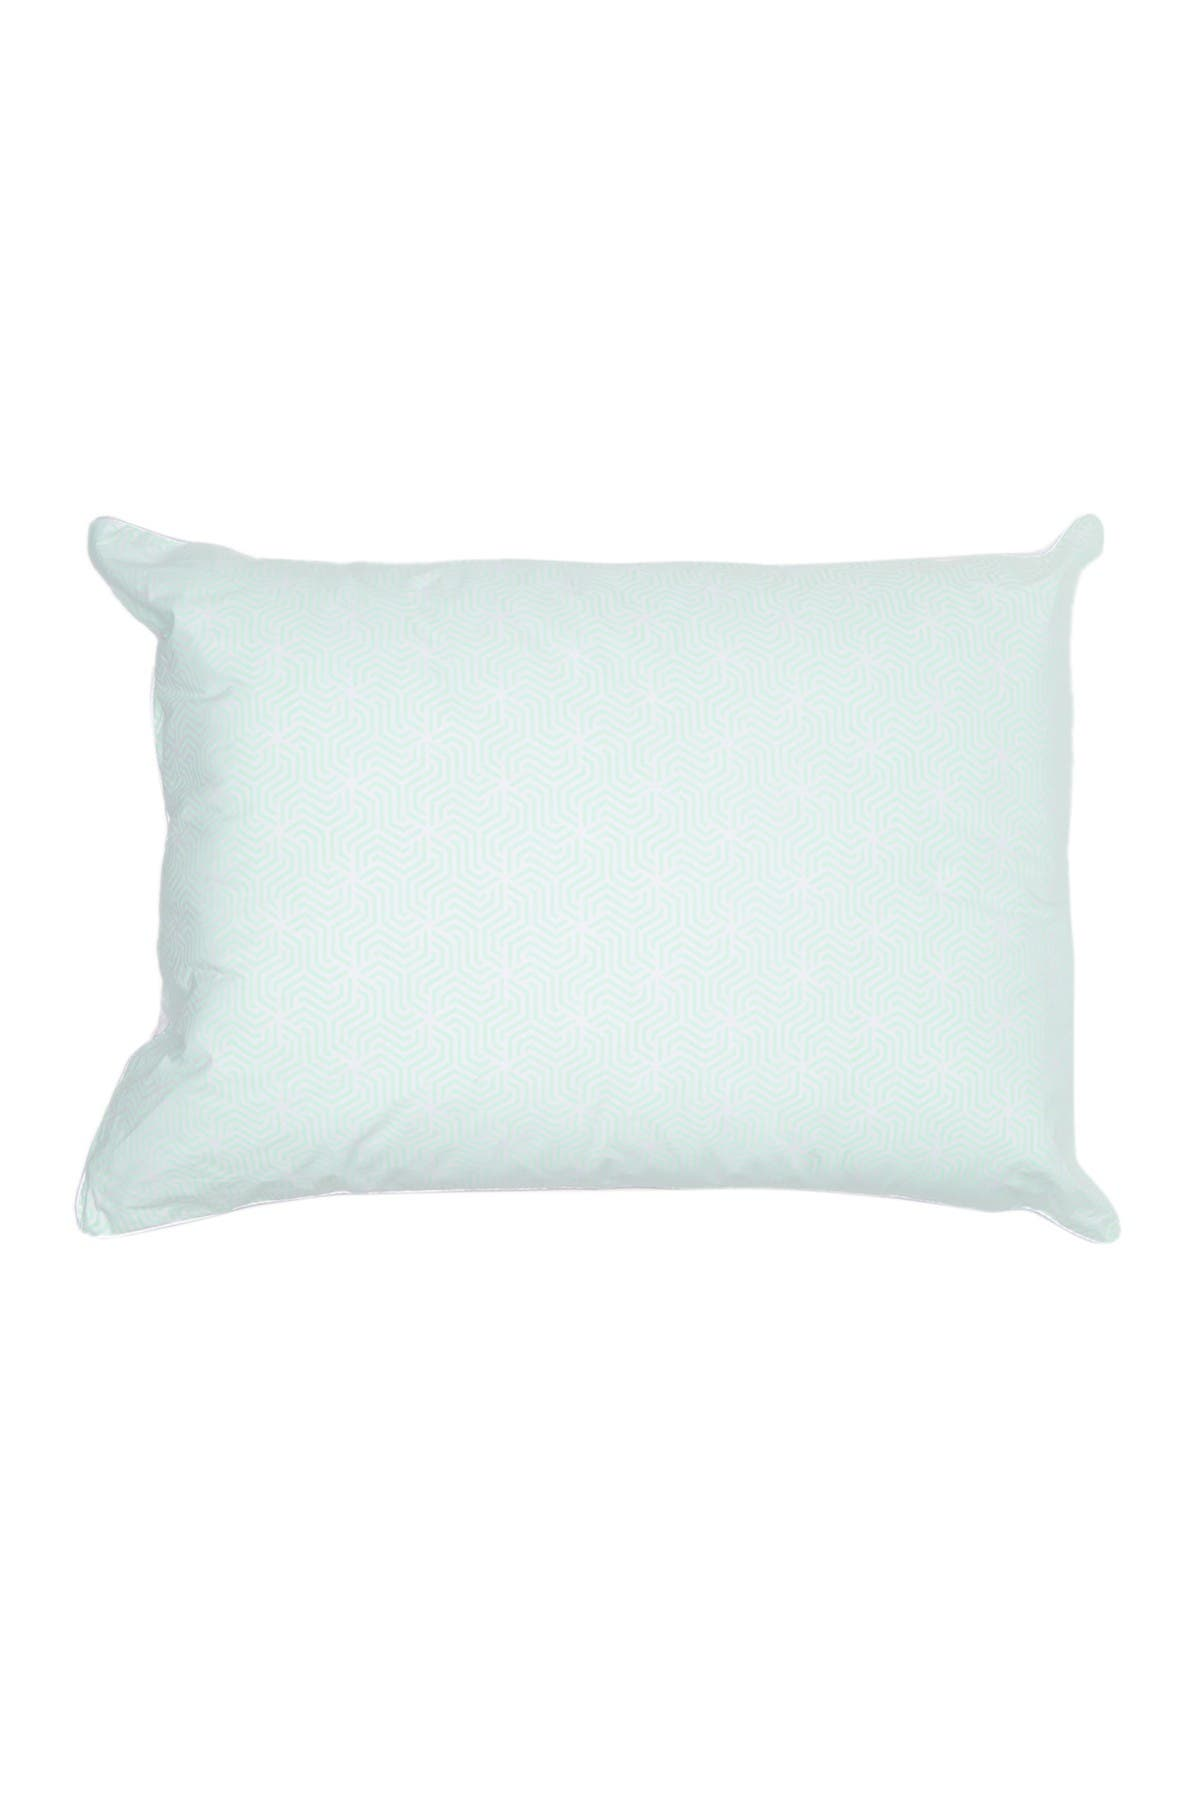 Image of Nordstrom Rack Cool Burst Standard Pillow - Set of 2